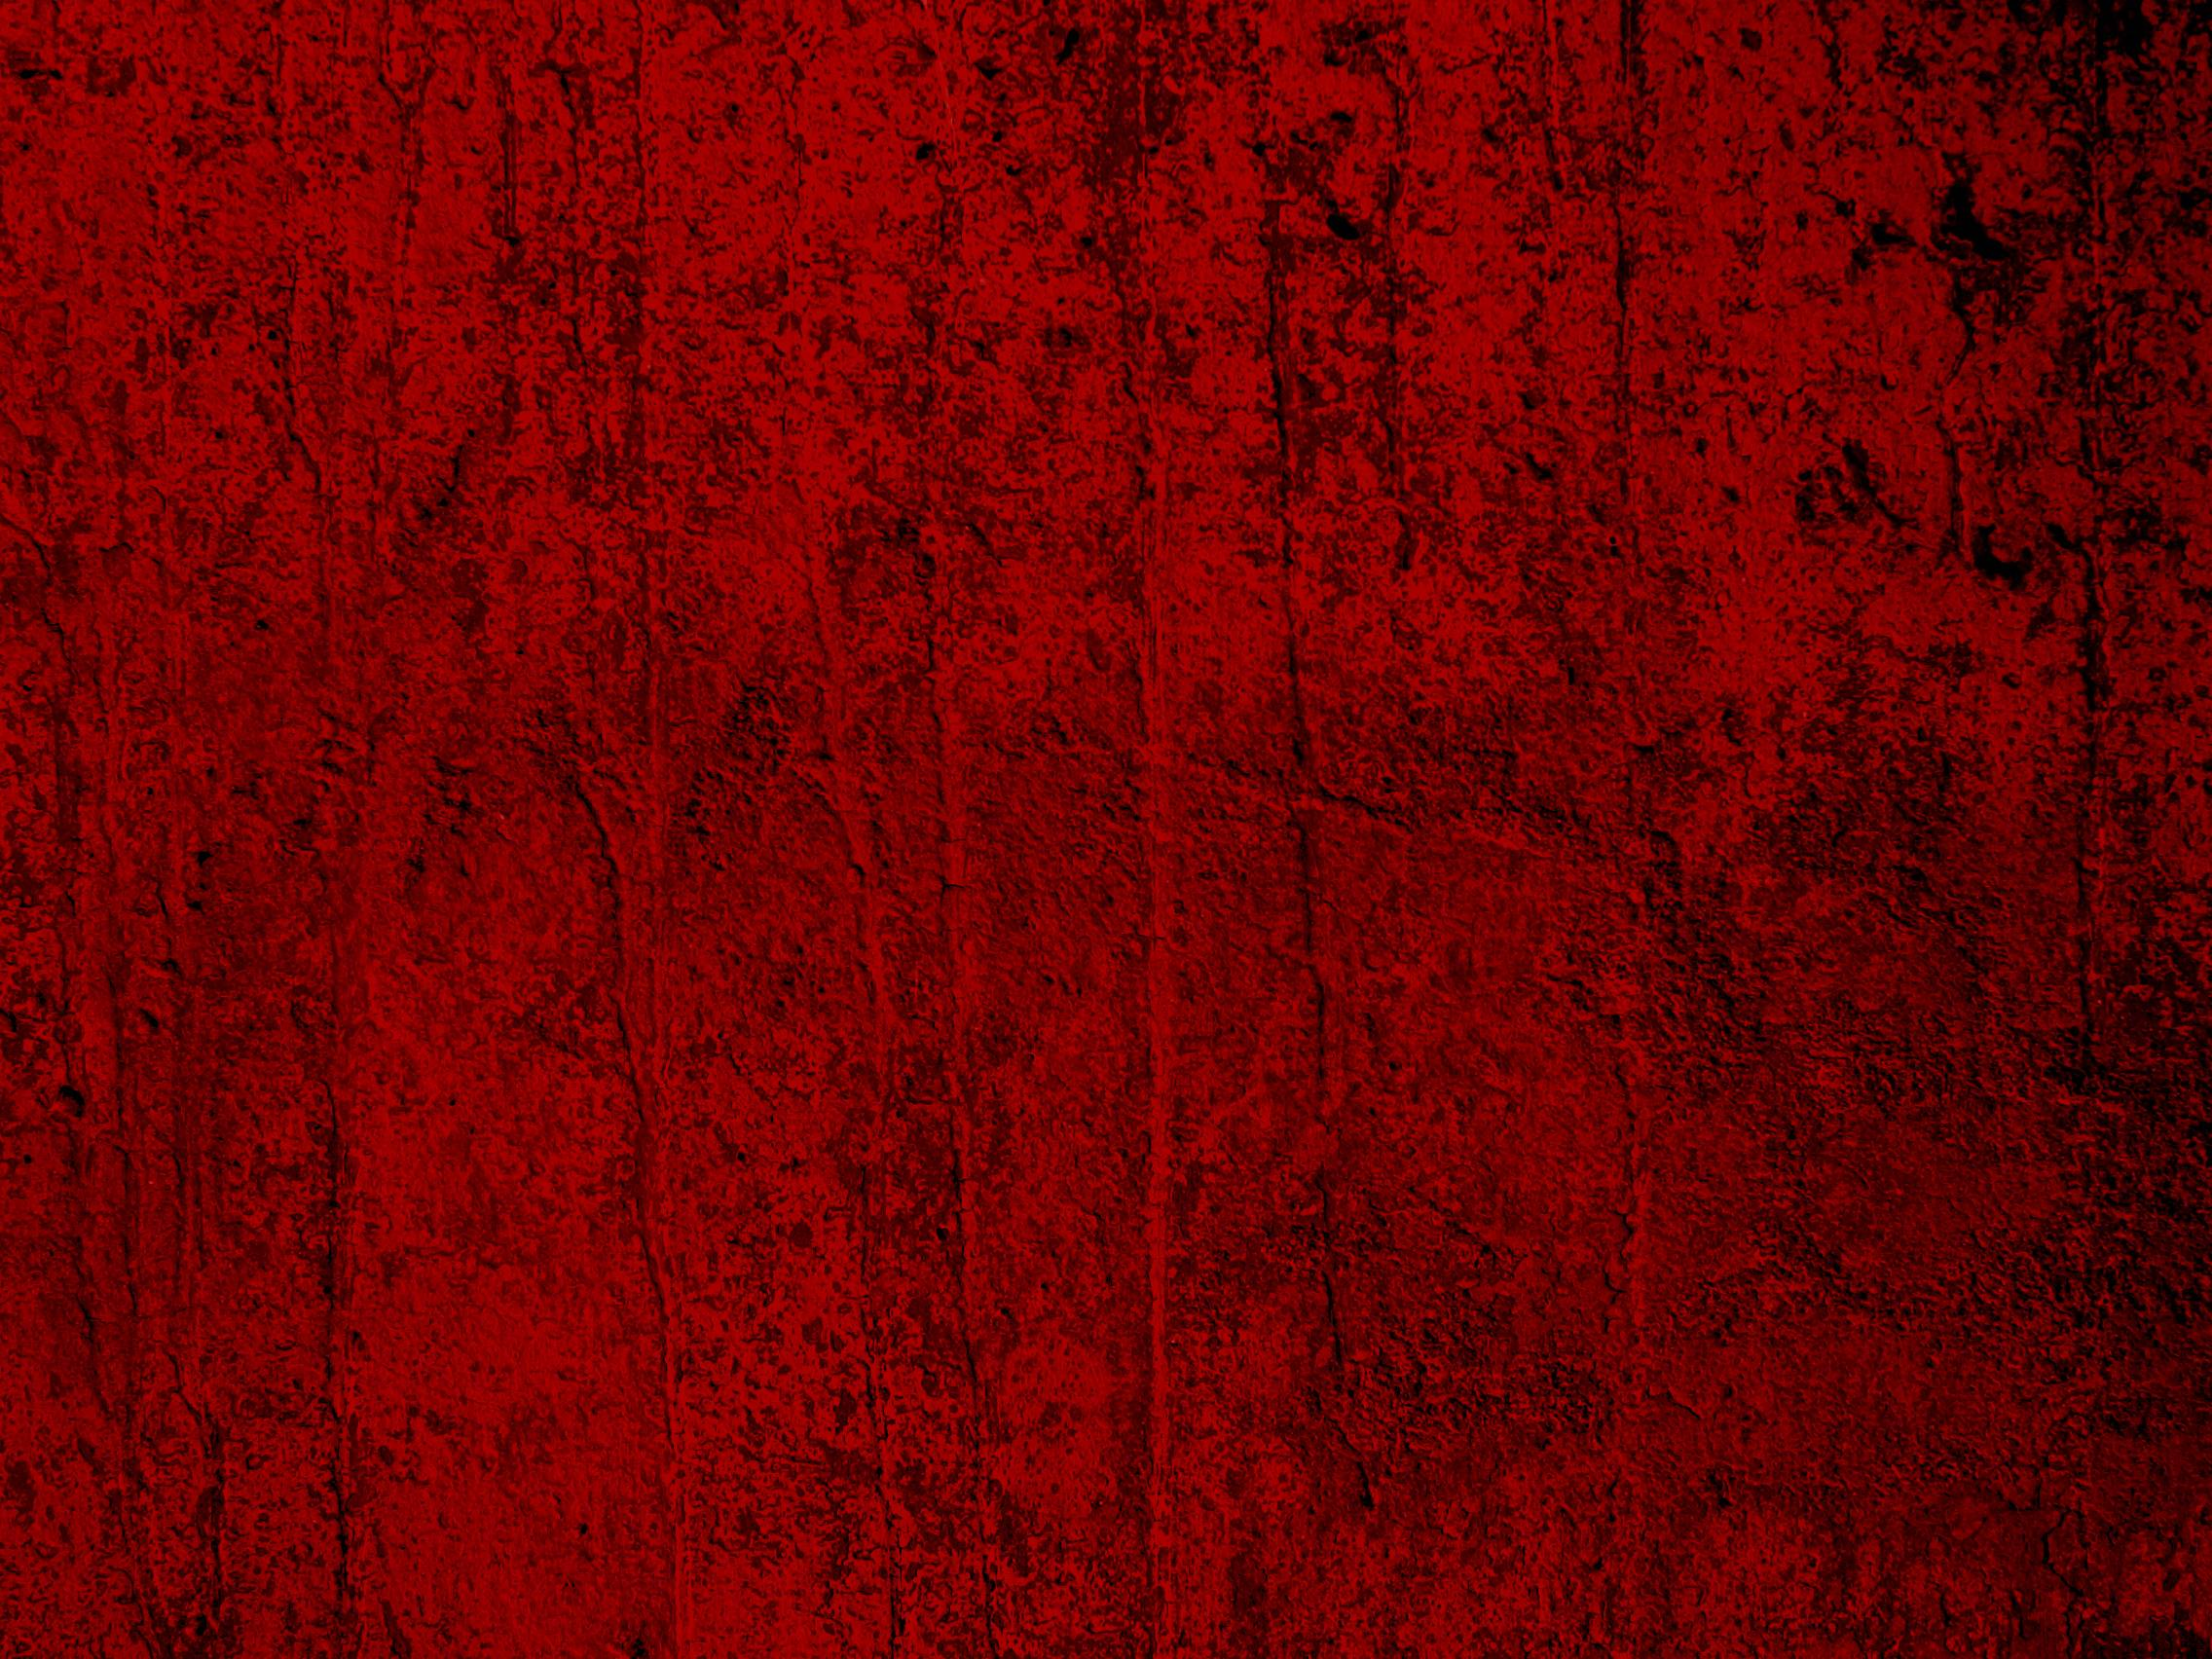 Red Texture Wallpapers - Top Free Red Texture Backgrounds ...